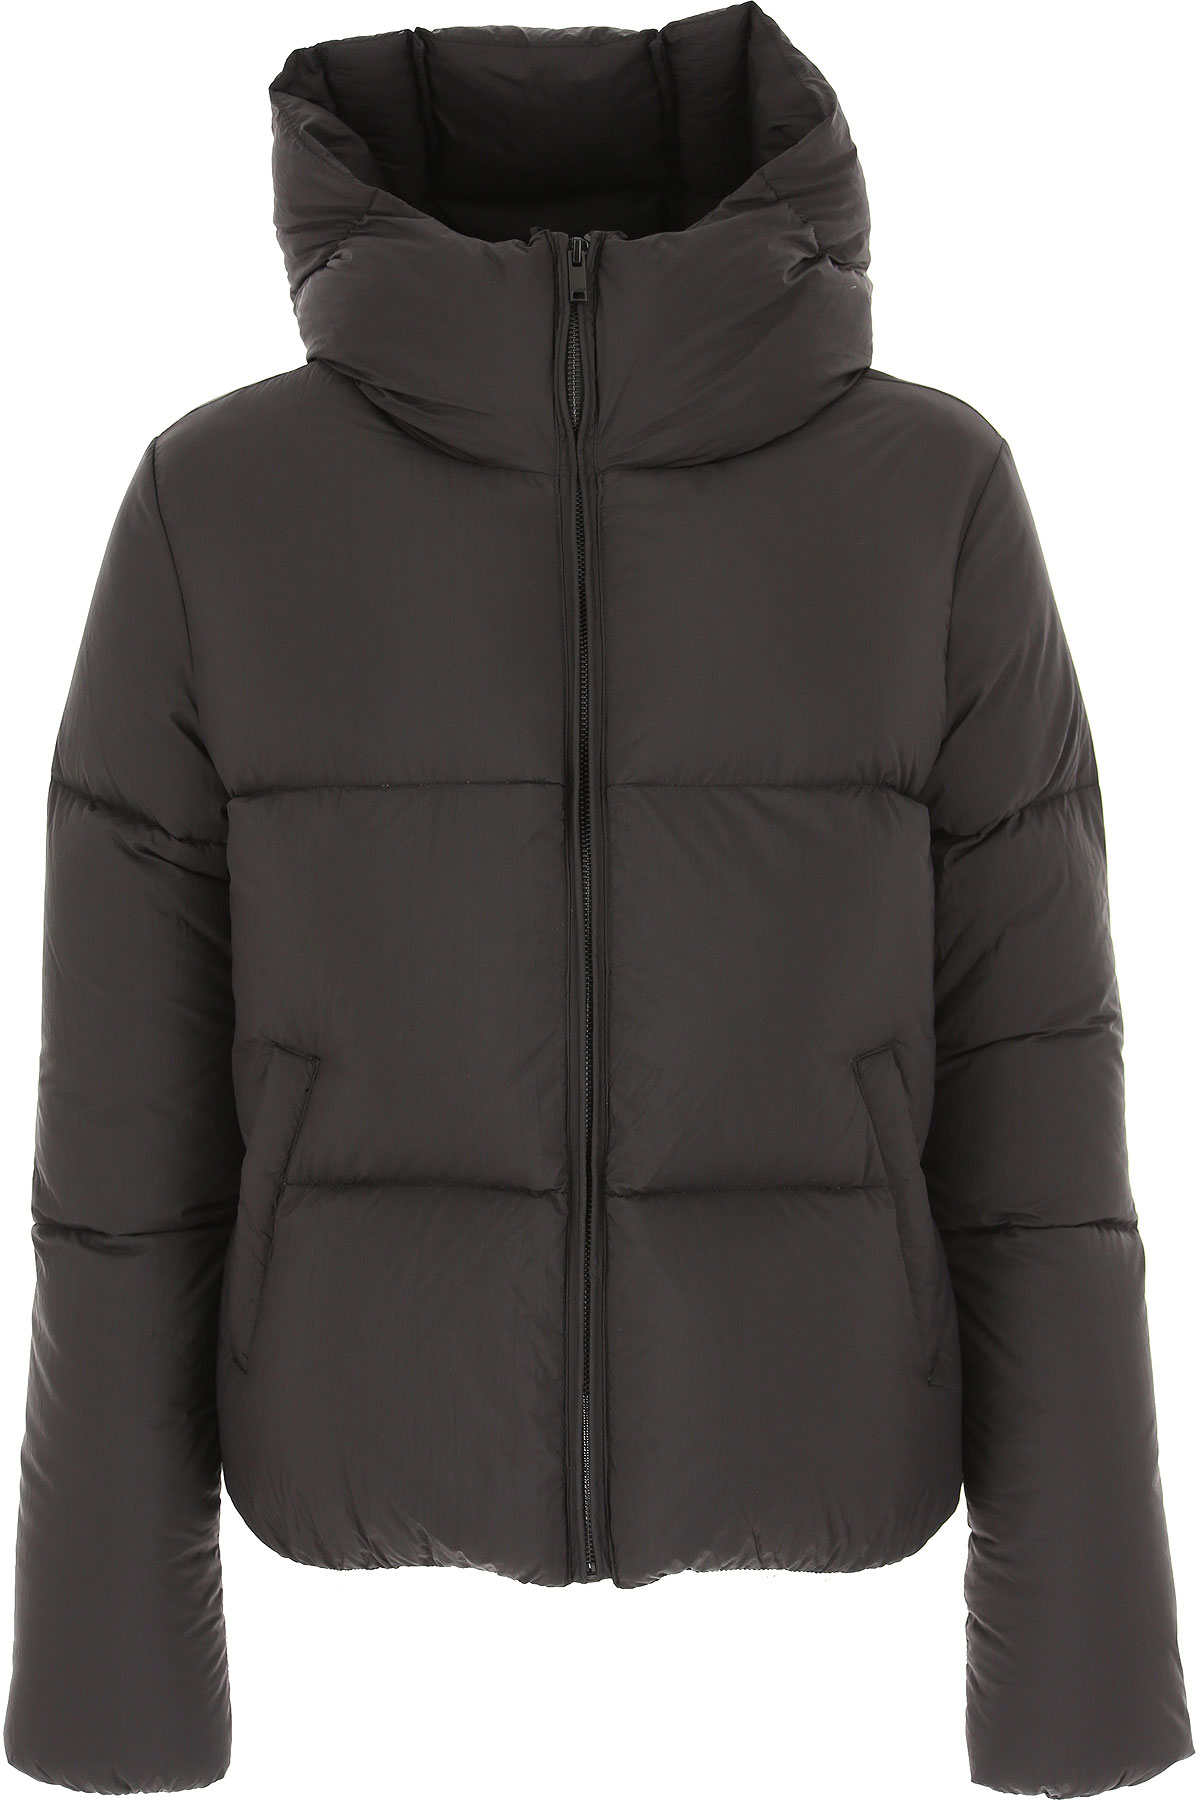 Dondup Down Jacket for Women, Puffer Ski Jacket On Sale, Black, polyester, 2019, 2 6